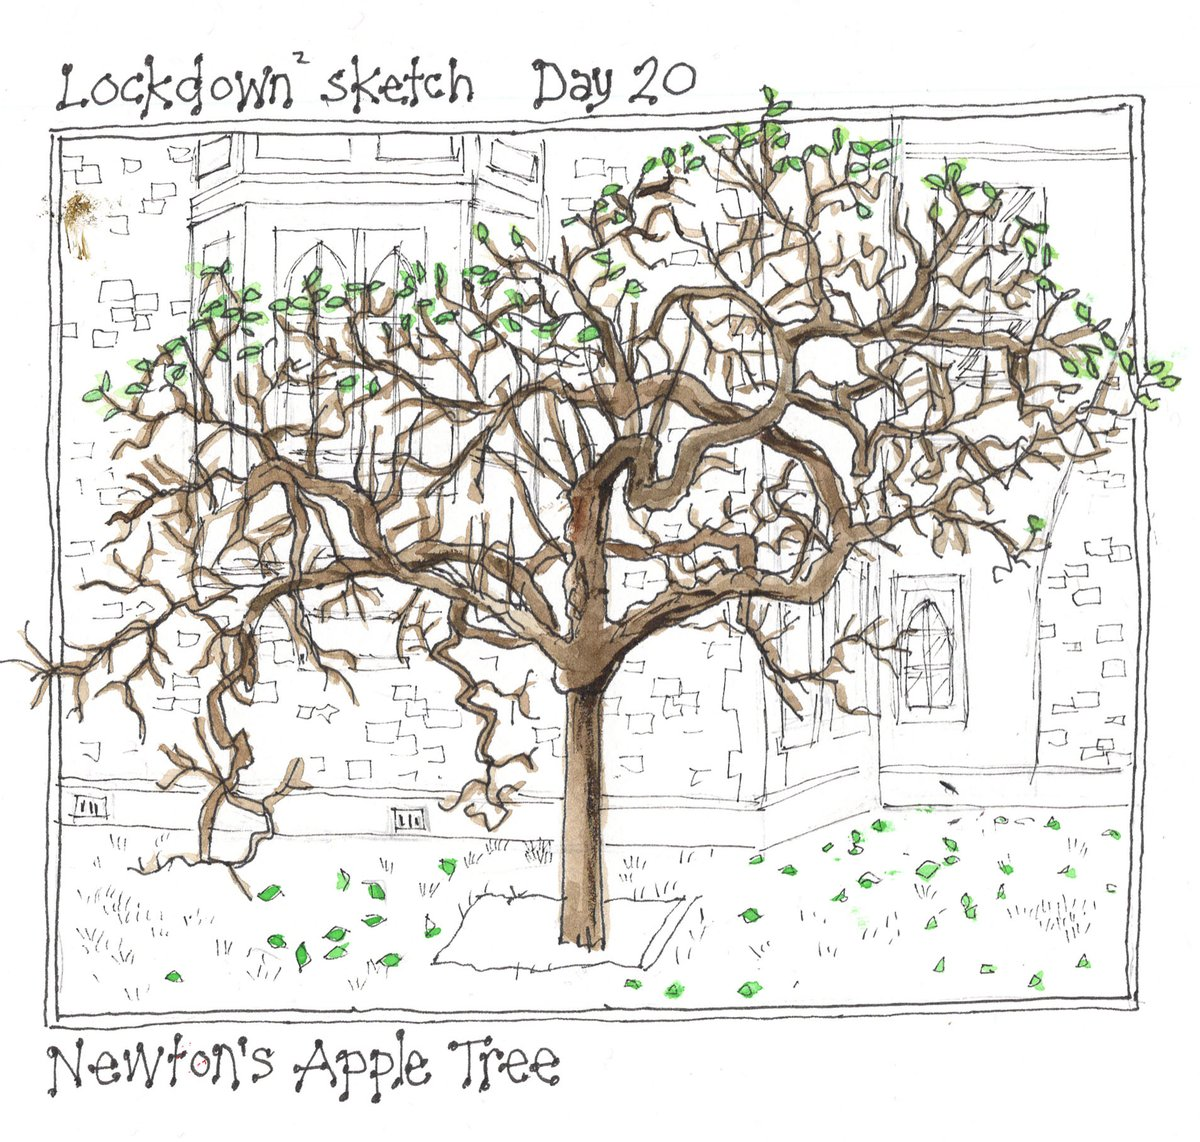 Lockdown2 sketch. Day 20. Newton's Apple Tree. Outside @TrinCollCam @USK_Cambridge  @Lockdown #Lockdown2 #sketch #Day20 #UrbanSketch #UrbanSketchers #AppleTree #NewtonsAppleTree https://t.co/YNCwhFecl8